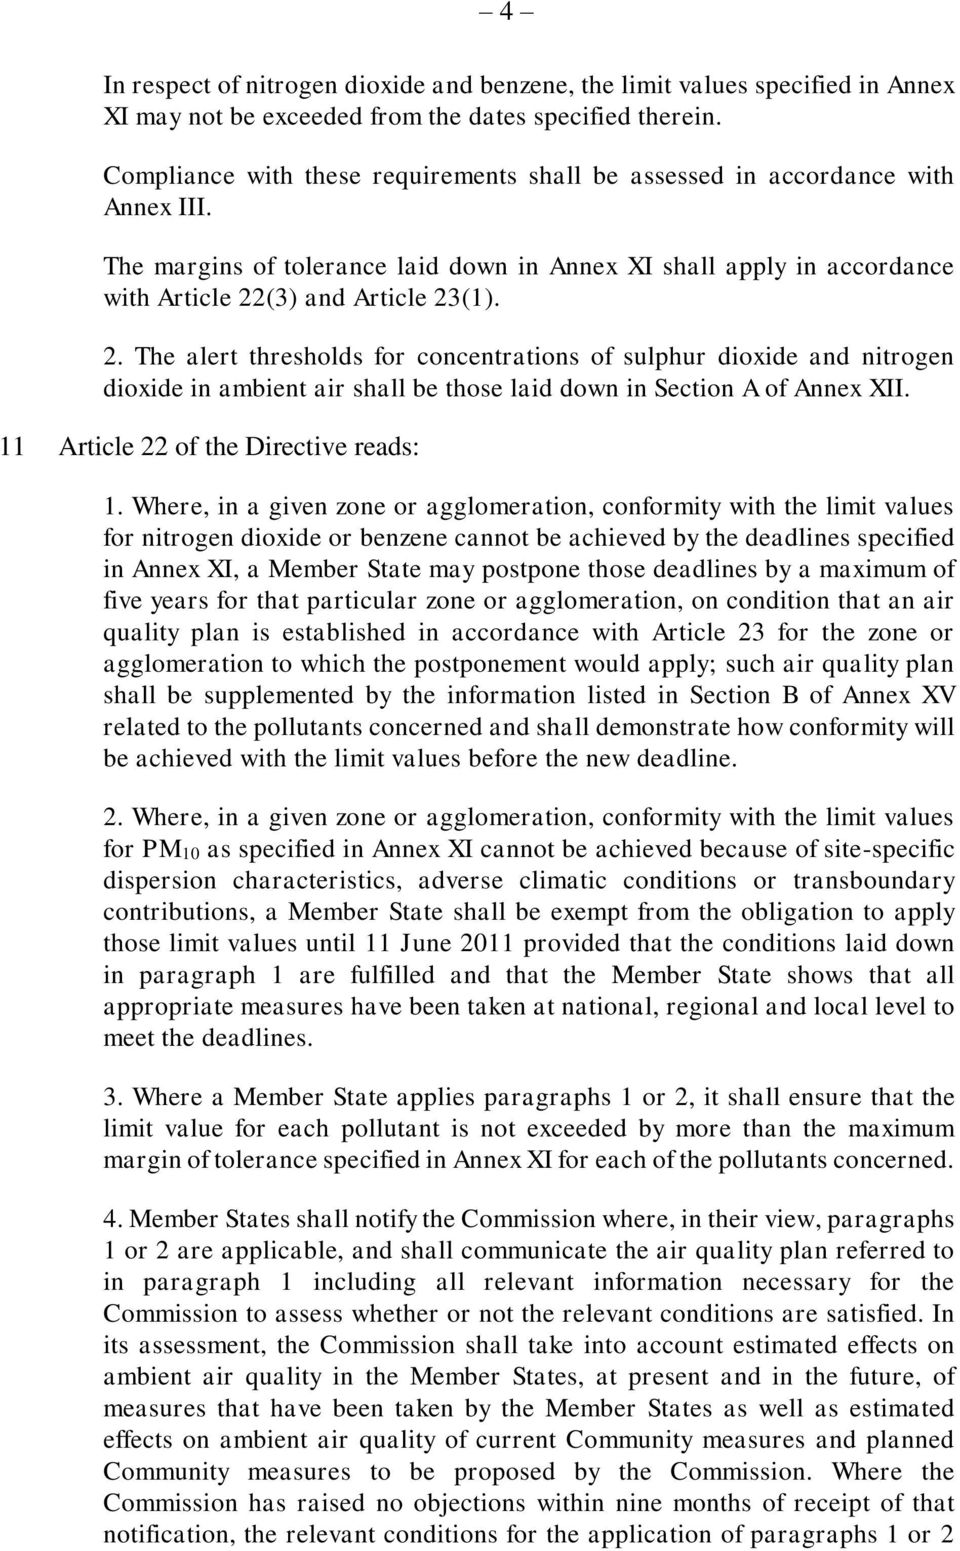 (3) and Article 23(1). 2. The alert thresholds for concentrations of sulphur dioxide and nitrogen dioxide in ambient air shall be those laid down in Section A of Annex XII.